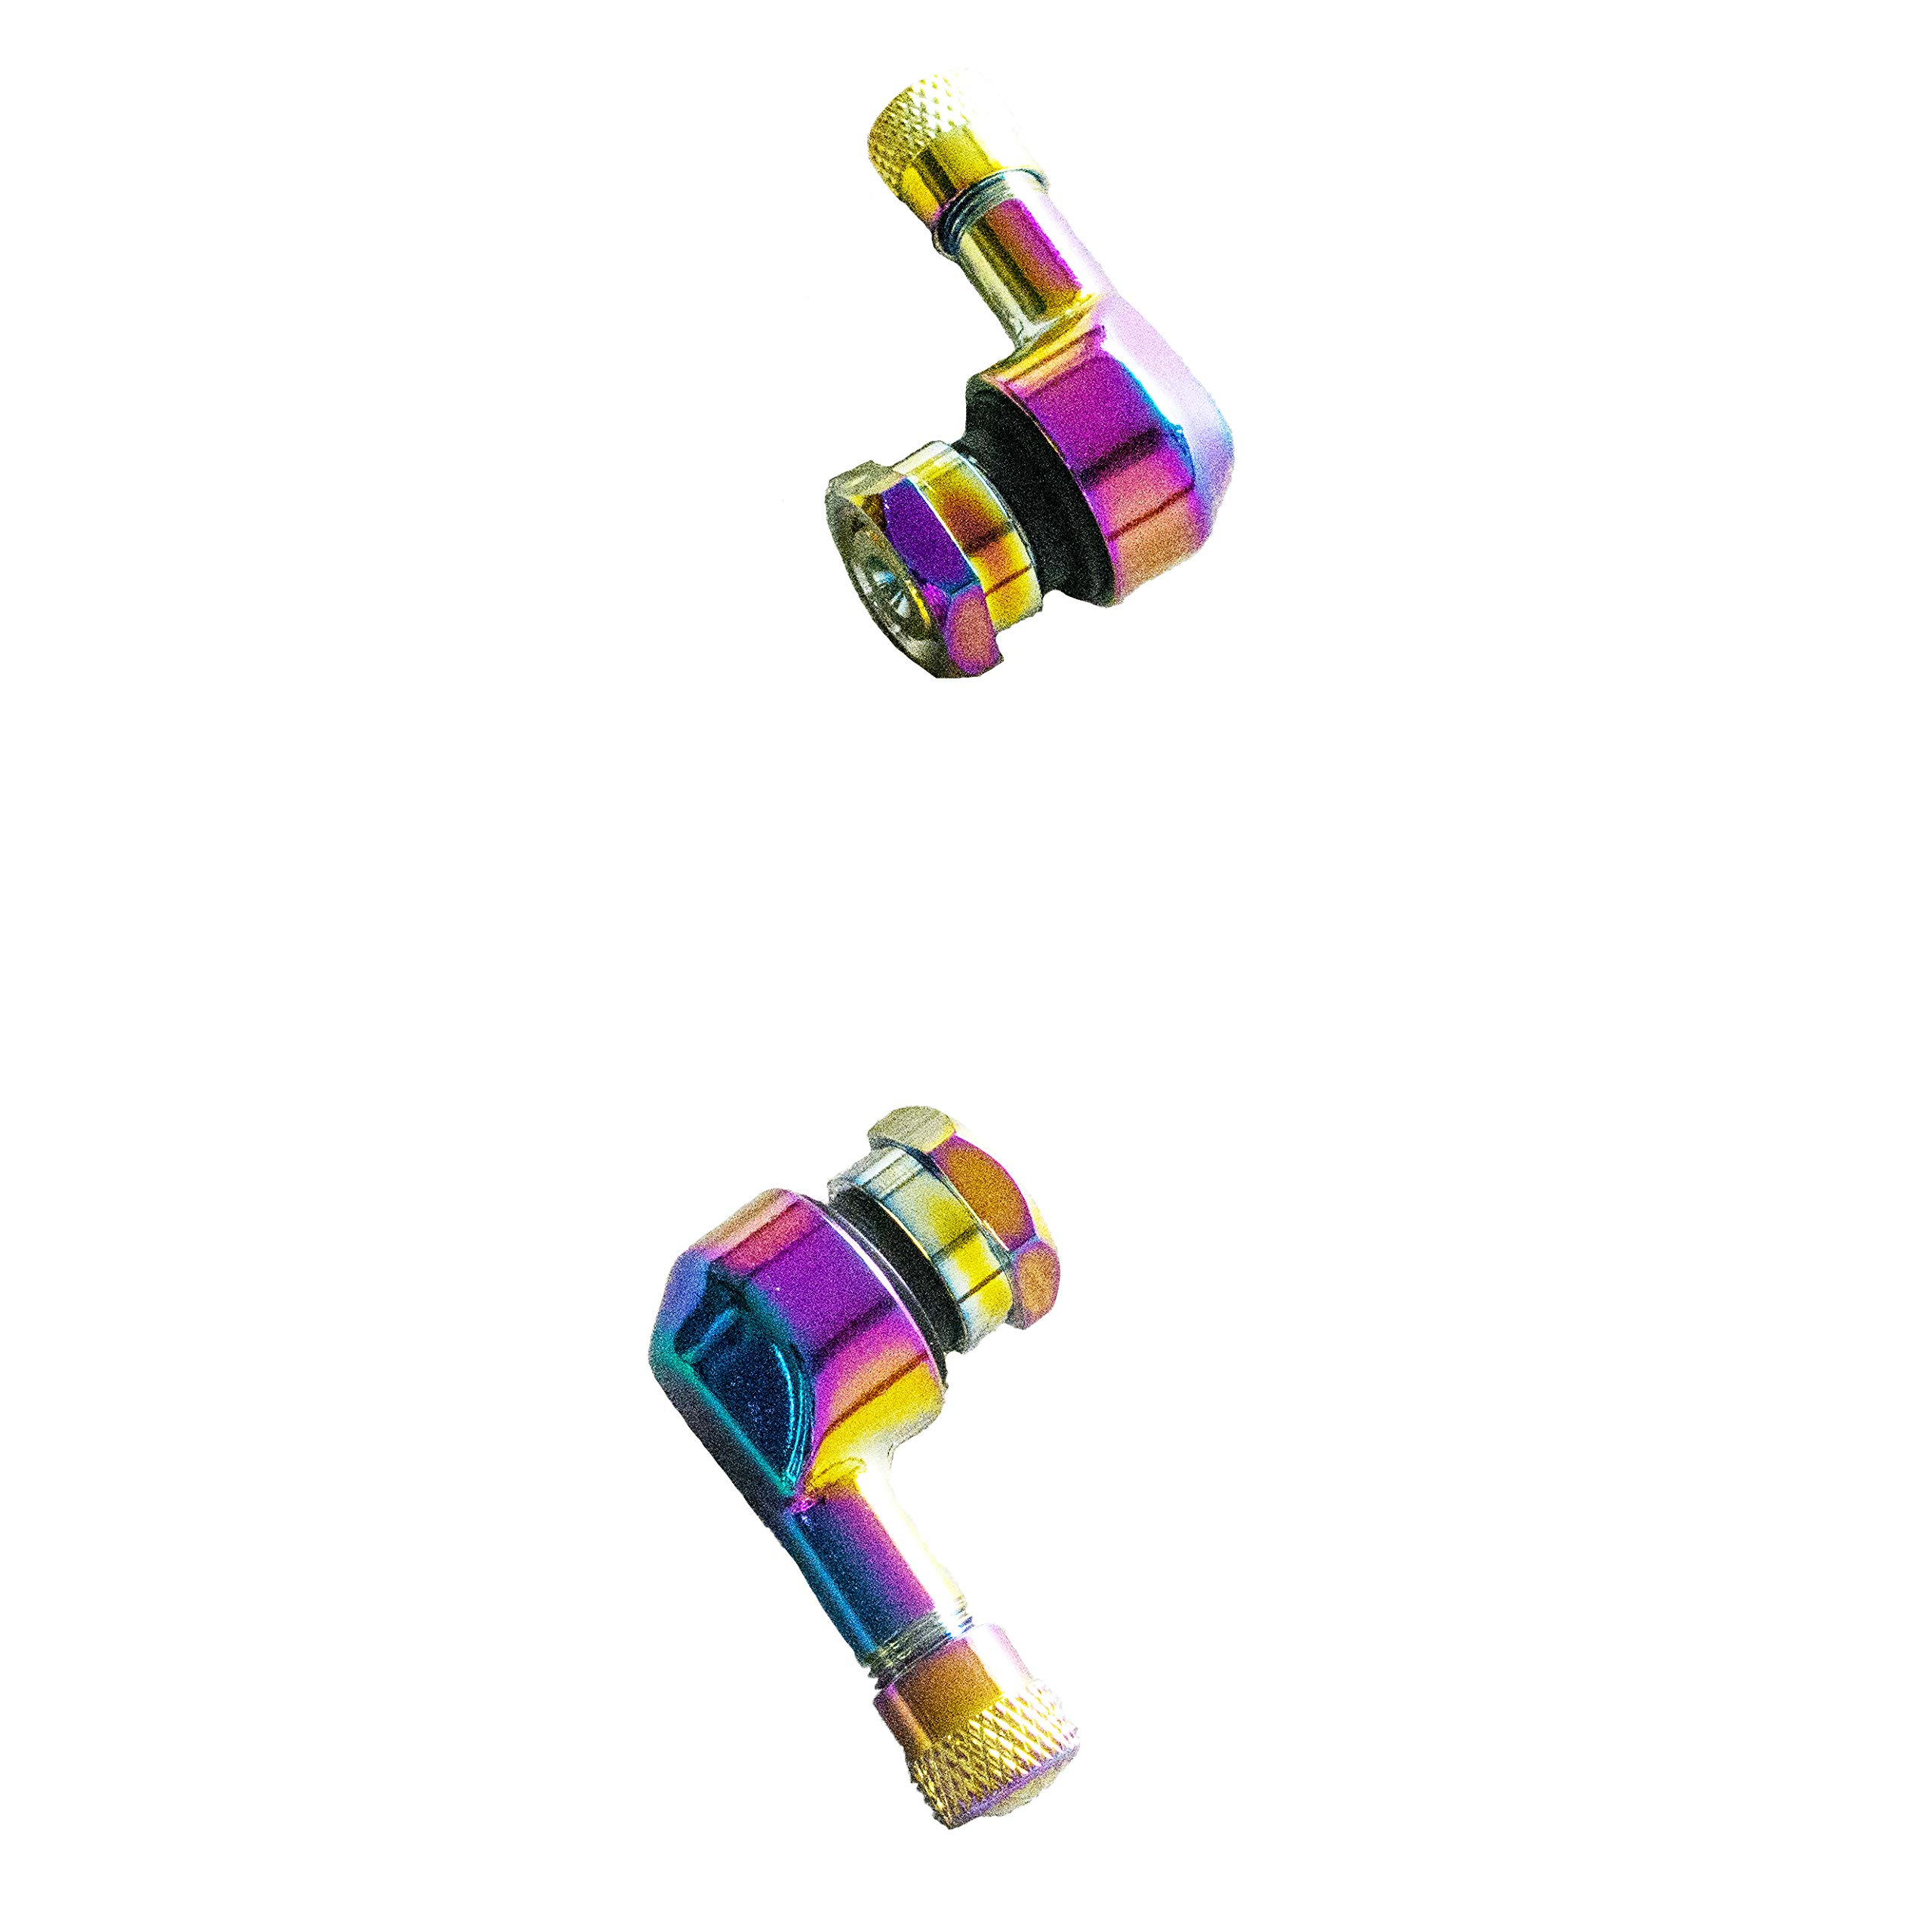 NEX Performance Angled forged Alloy Valve Stem, 0.453in (11.3mm) Size, Neo Chrome by NEX Performance